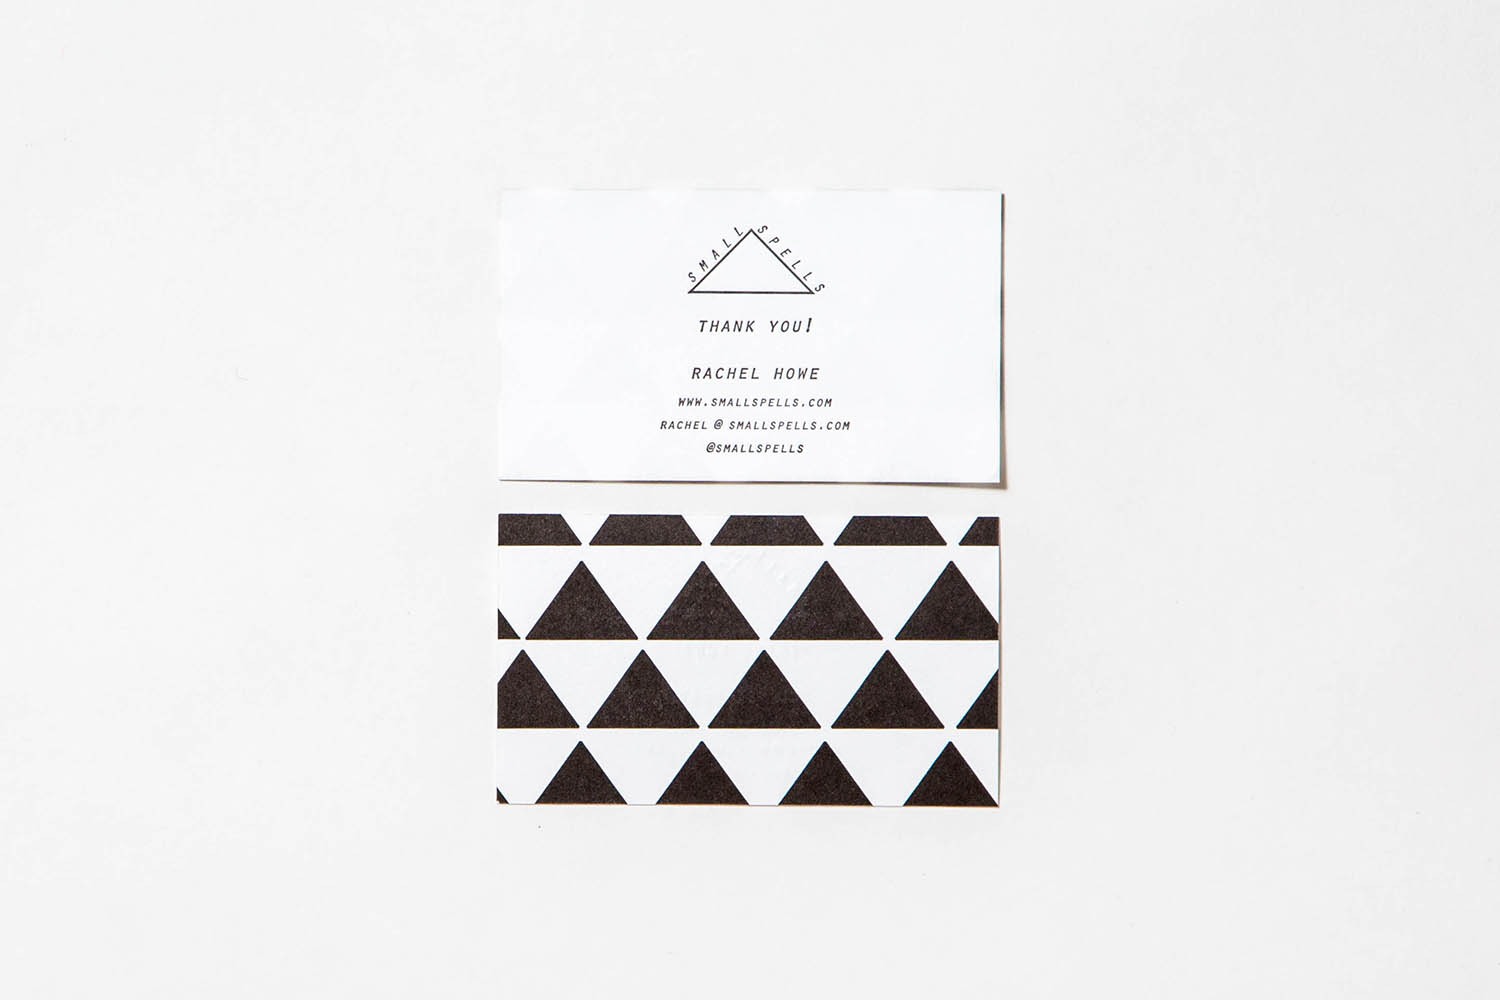 Letterpress Rachel Howe business cards